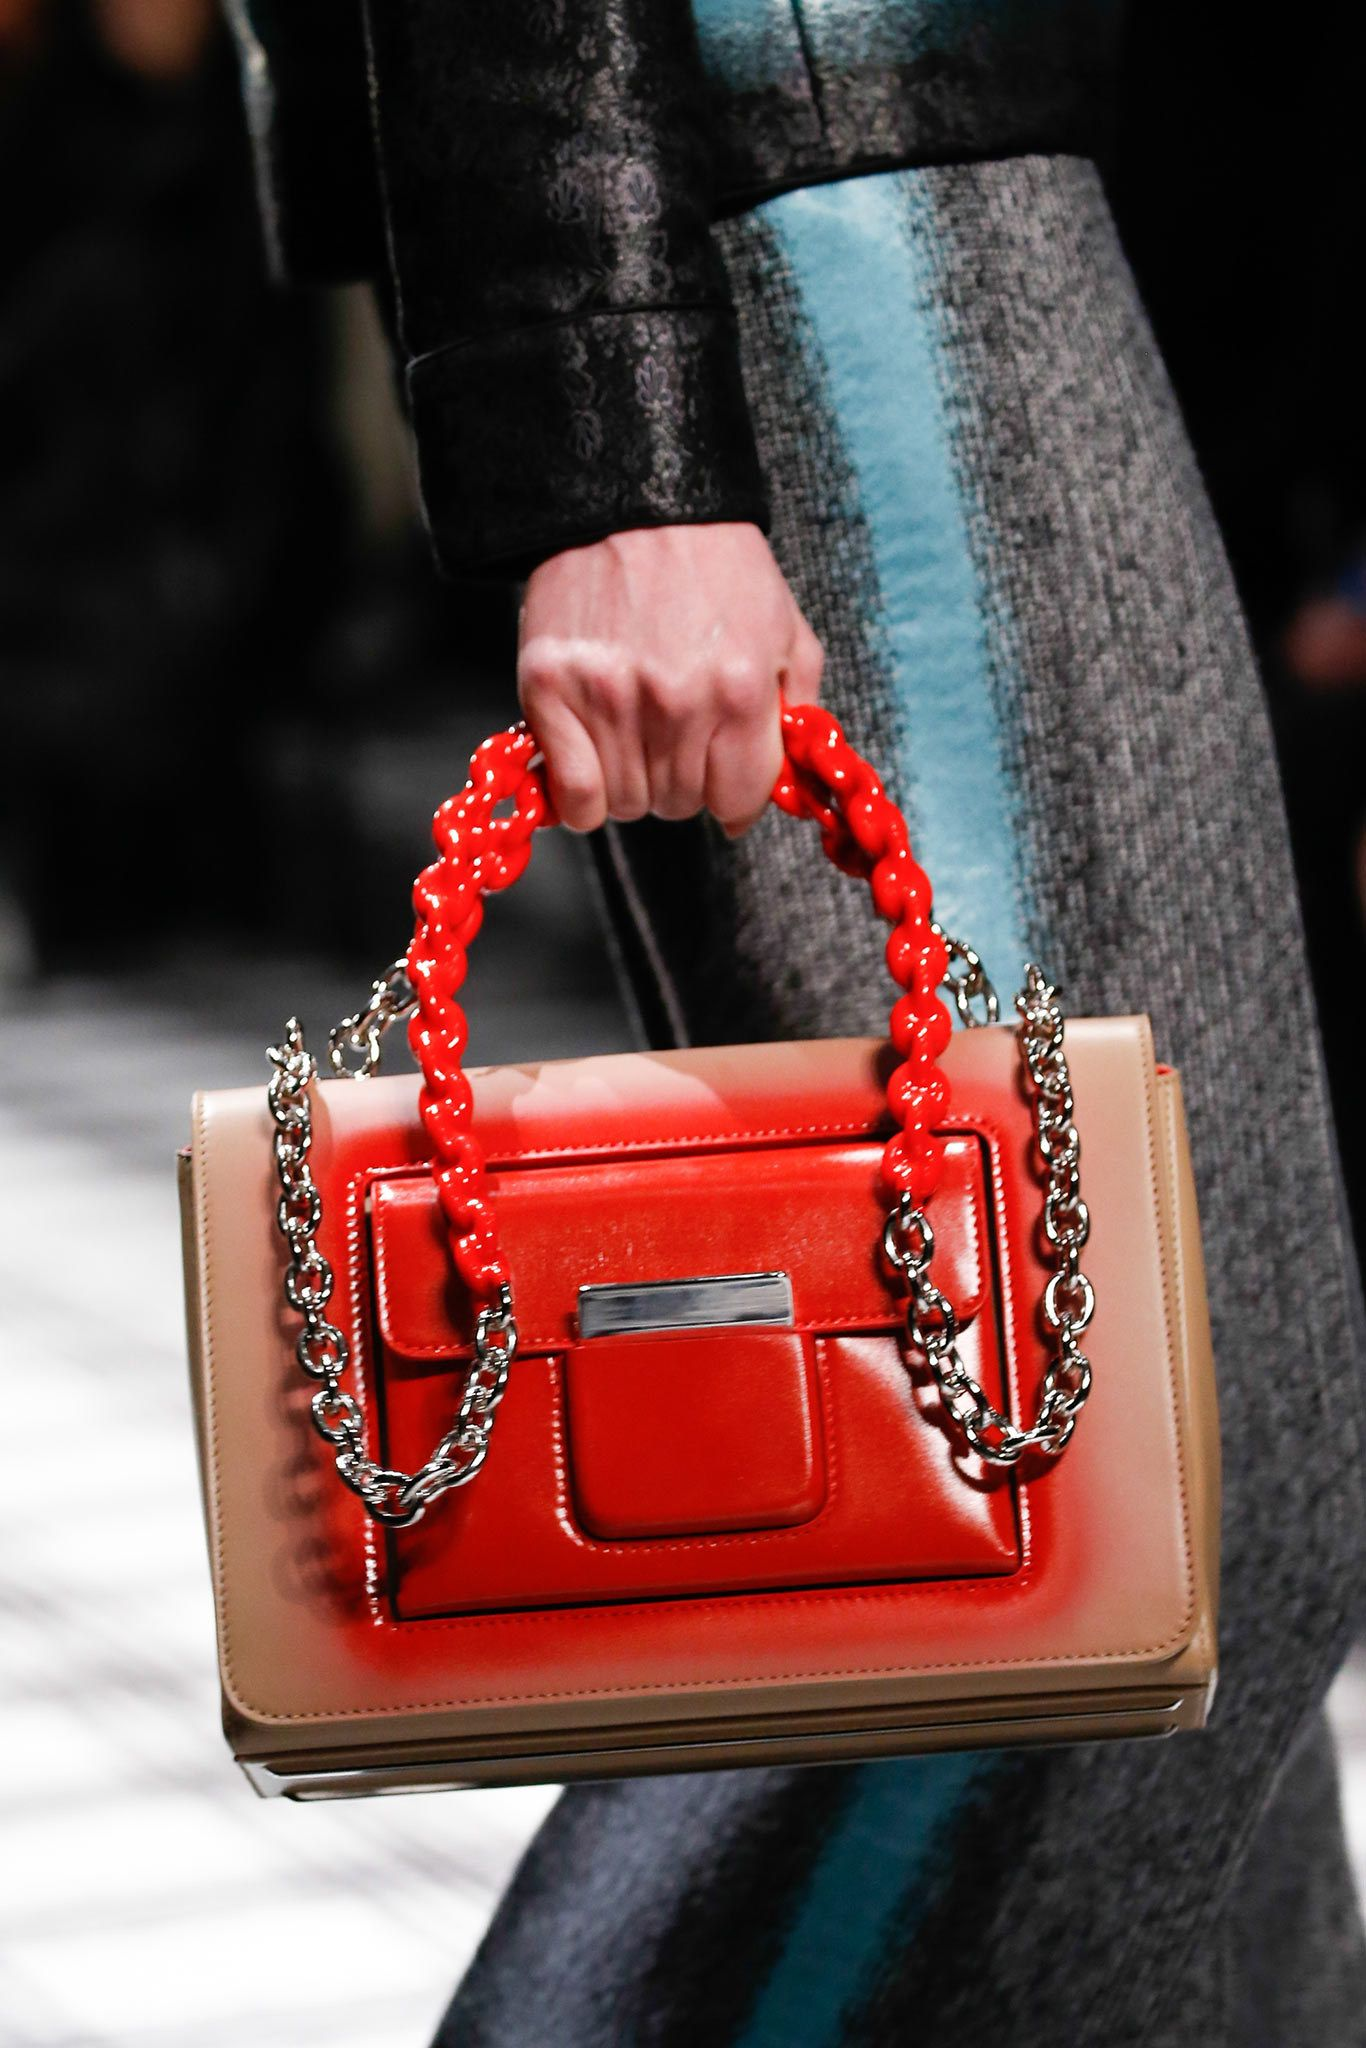 Balenciaga Fall 2015 Ready-to-Wear Accessories Photos - Vogue